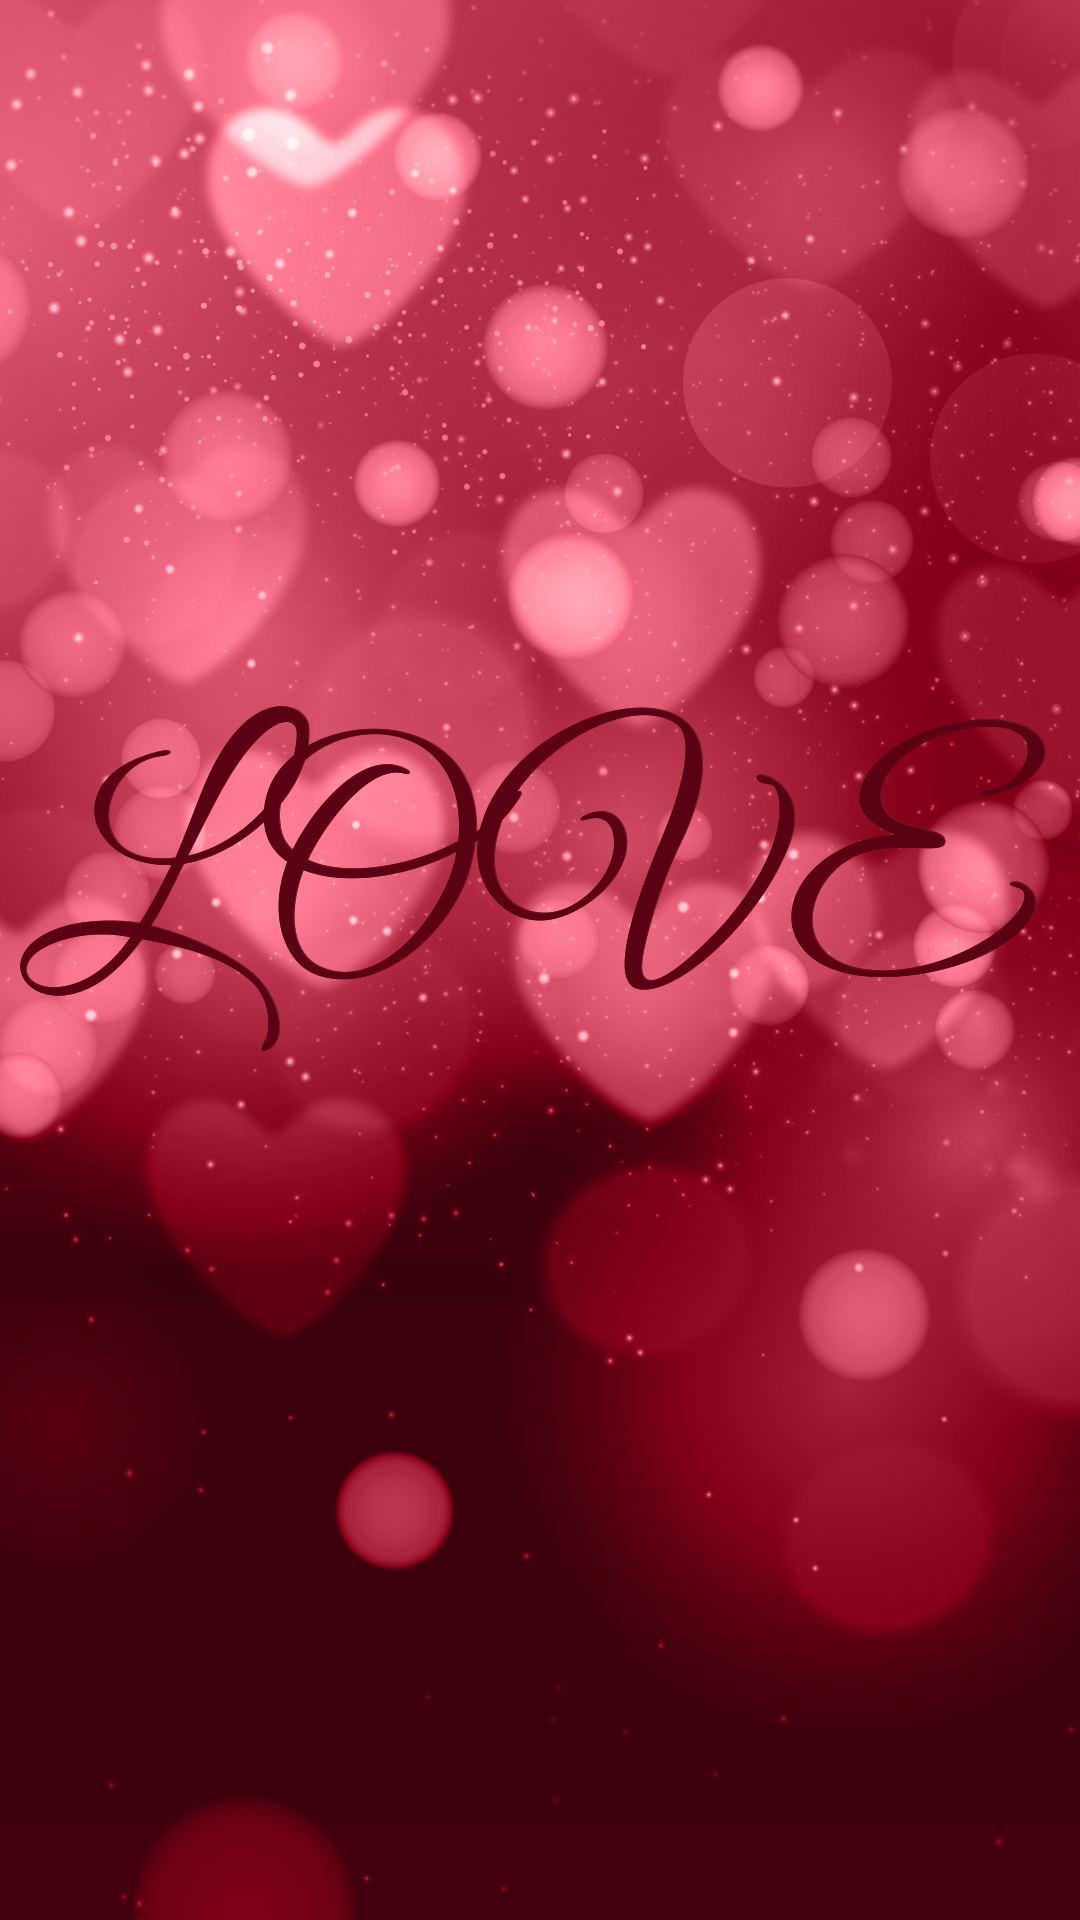 Real love hd wallpaper for your mobile phone - J love wallpaper download ...